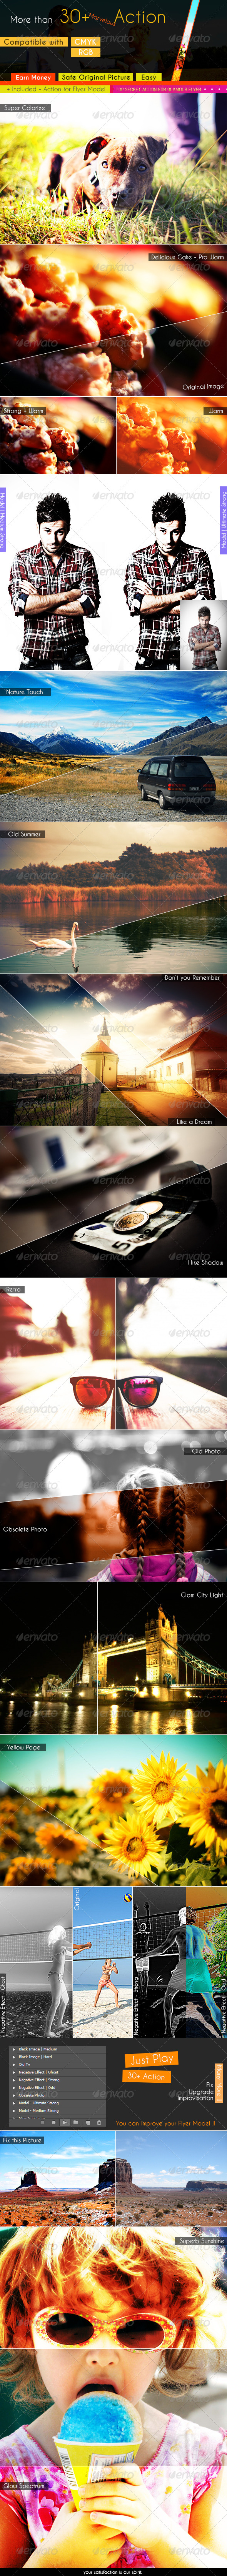 GraphicRiver 35 Marvelous Action 6689924